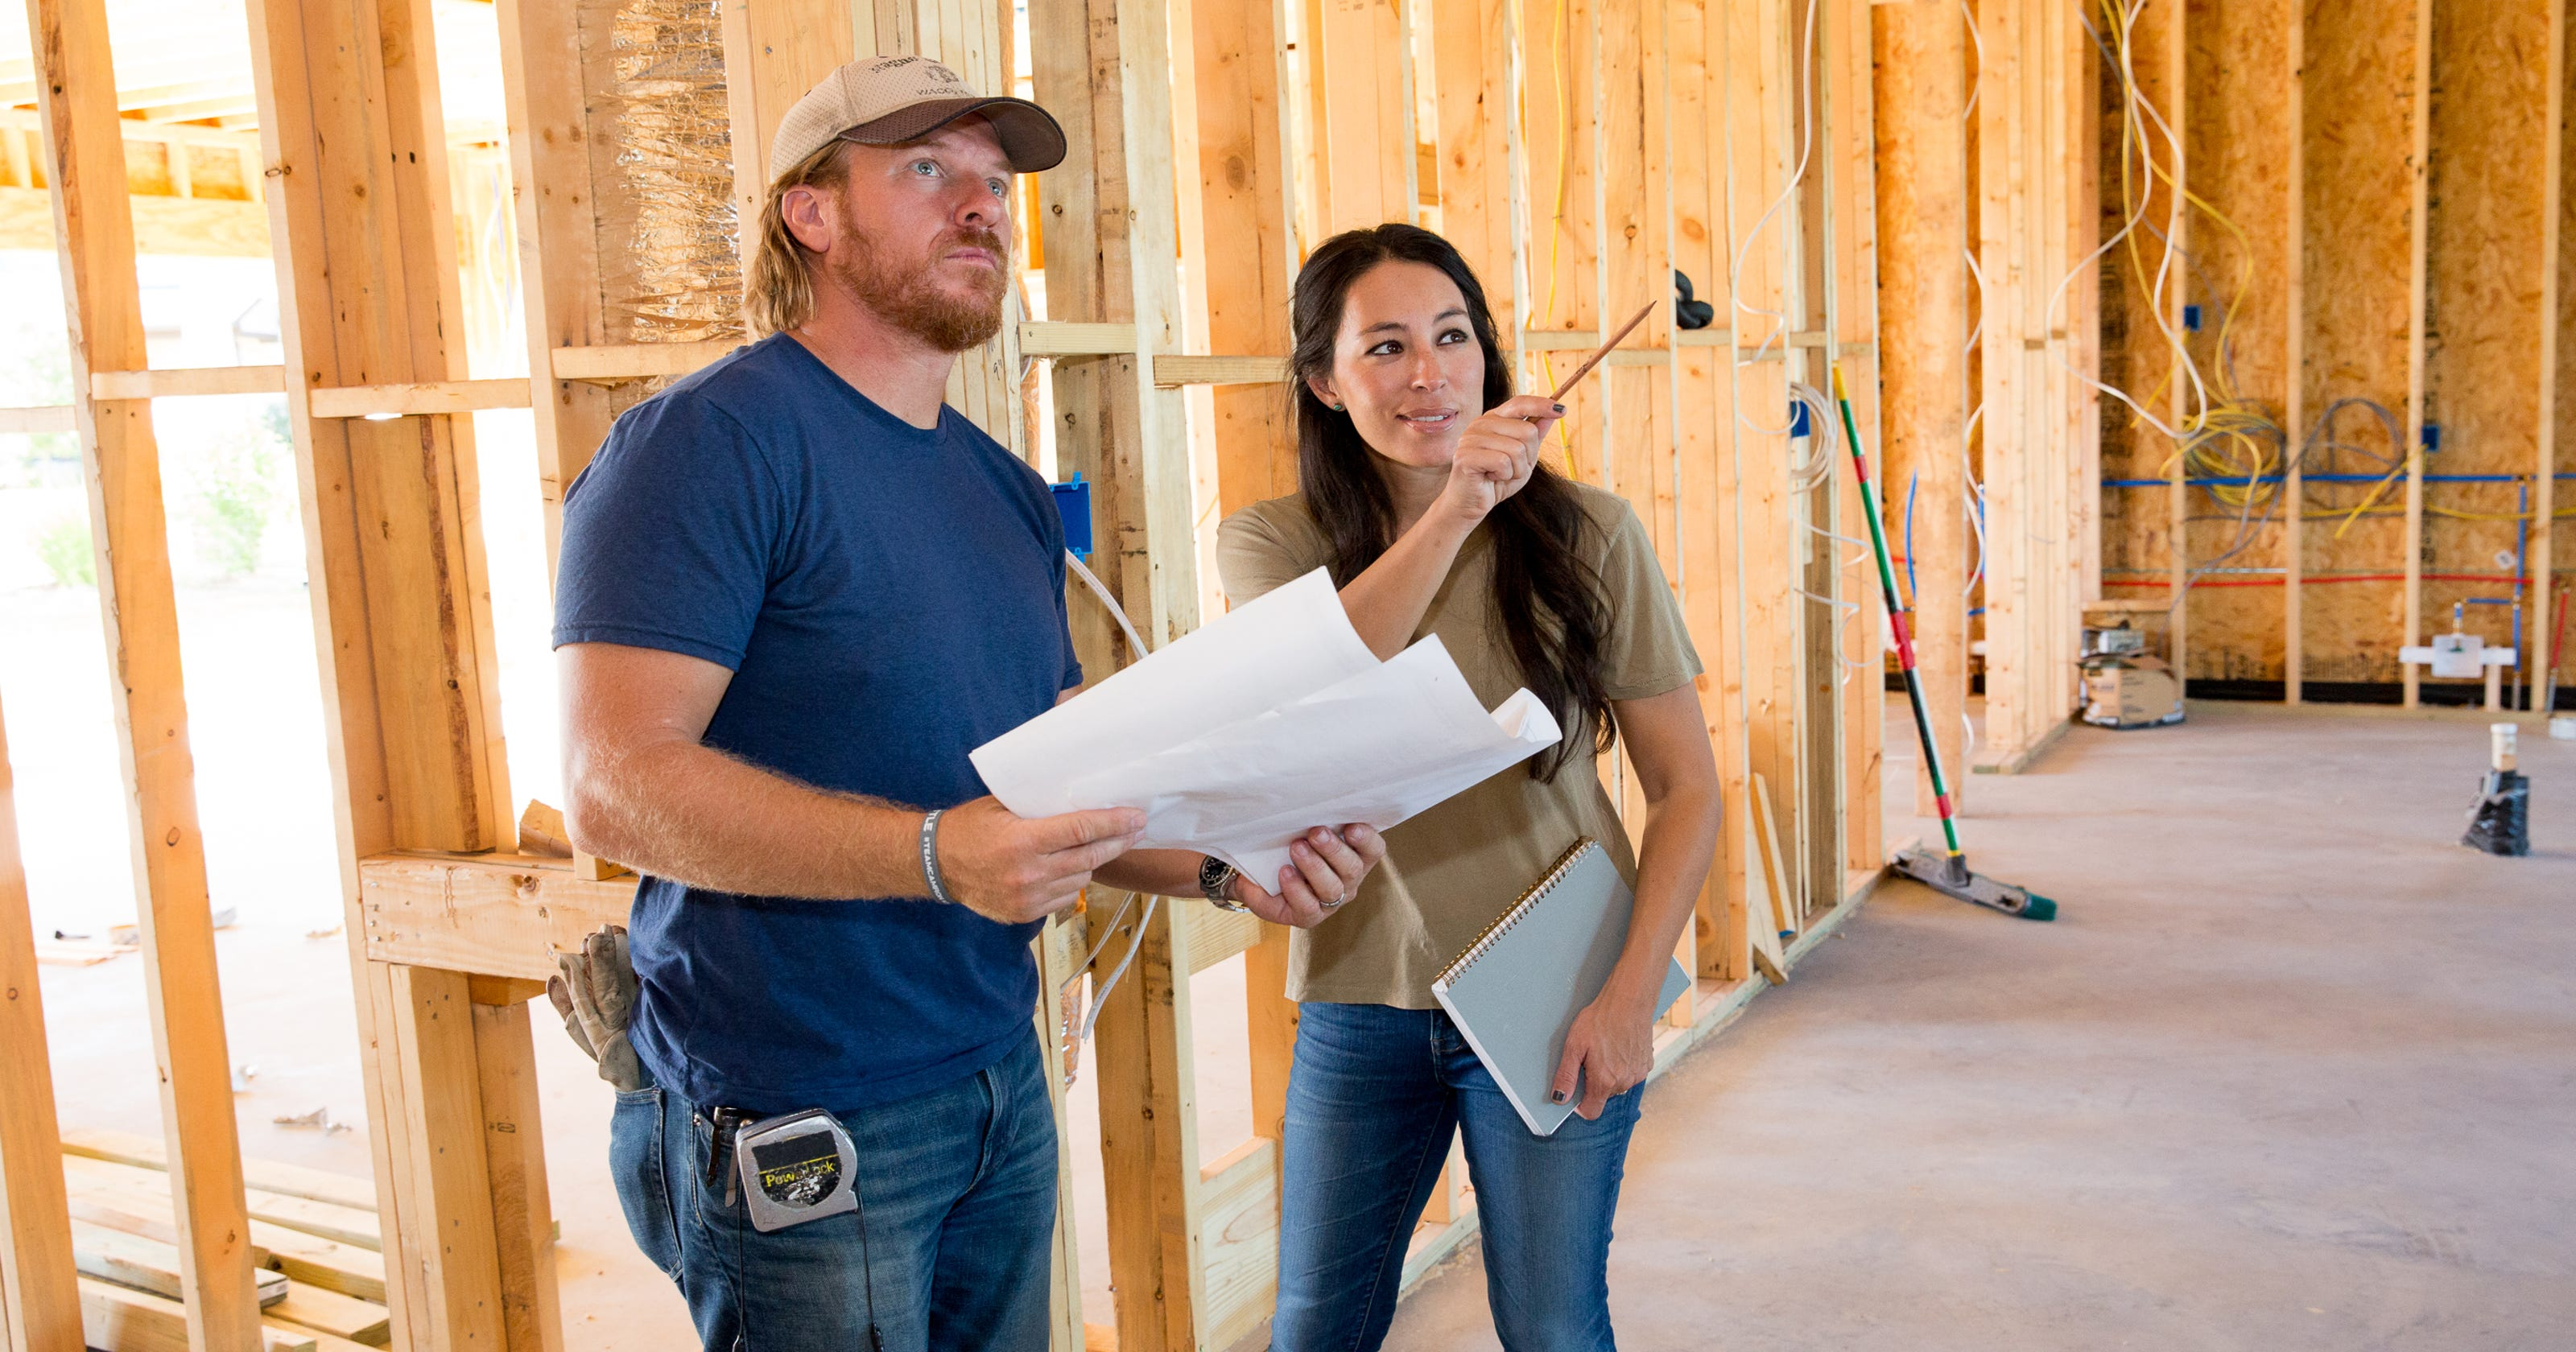 Chip And Joanna Gaines: The Appeal Of HGTV's Fixer Upper Stars